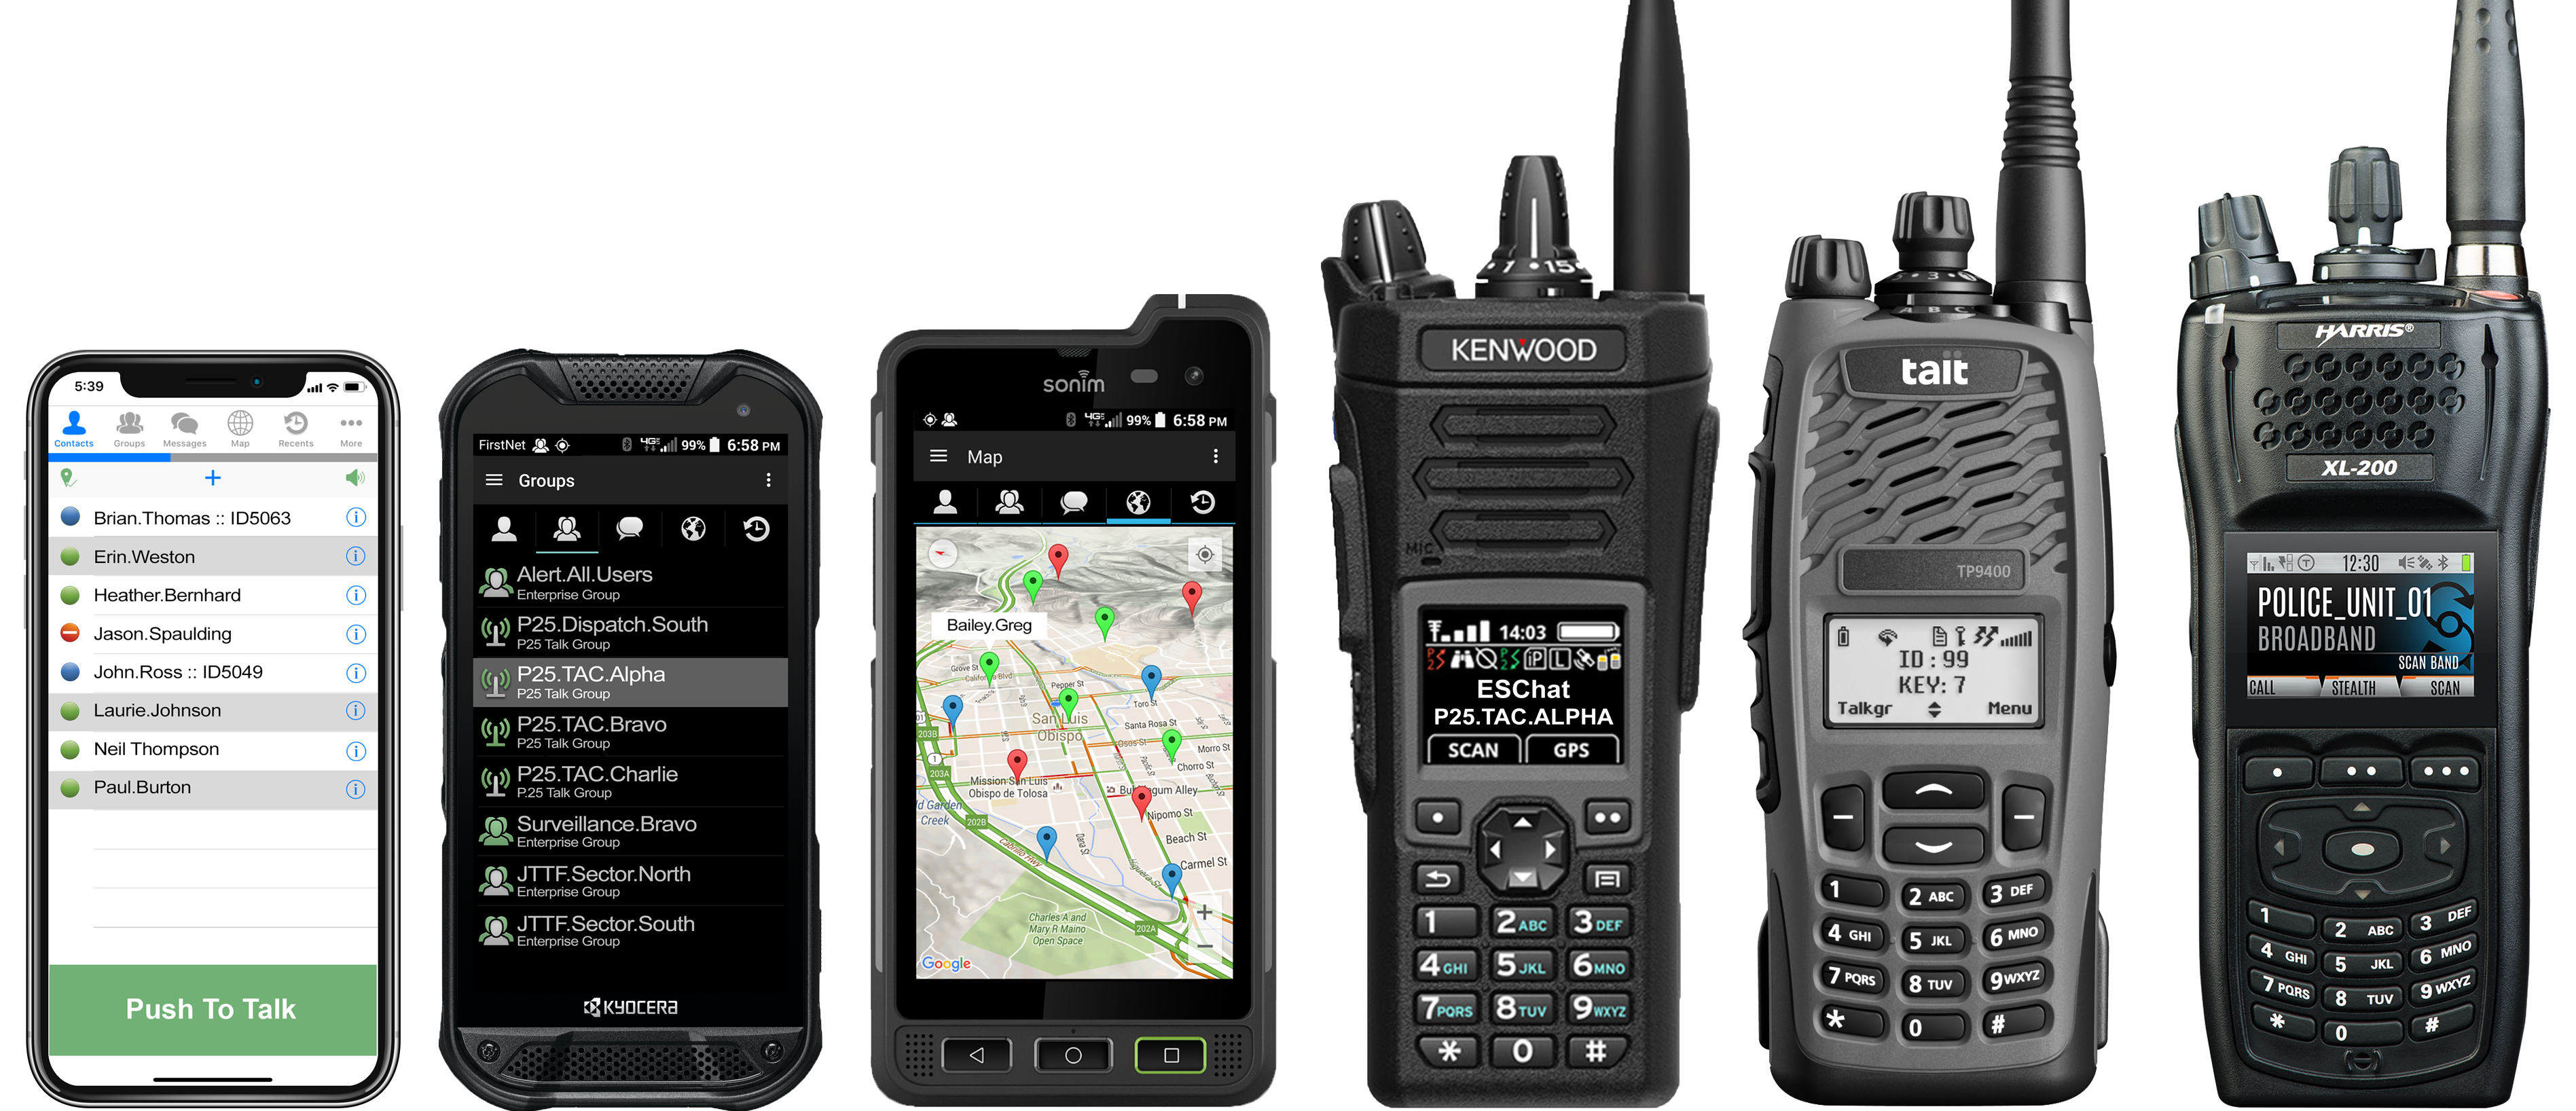 Push-to-Talk for your Smartphone with Integrated Radio Interoperability